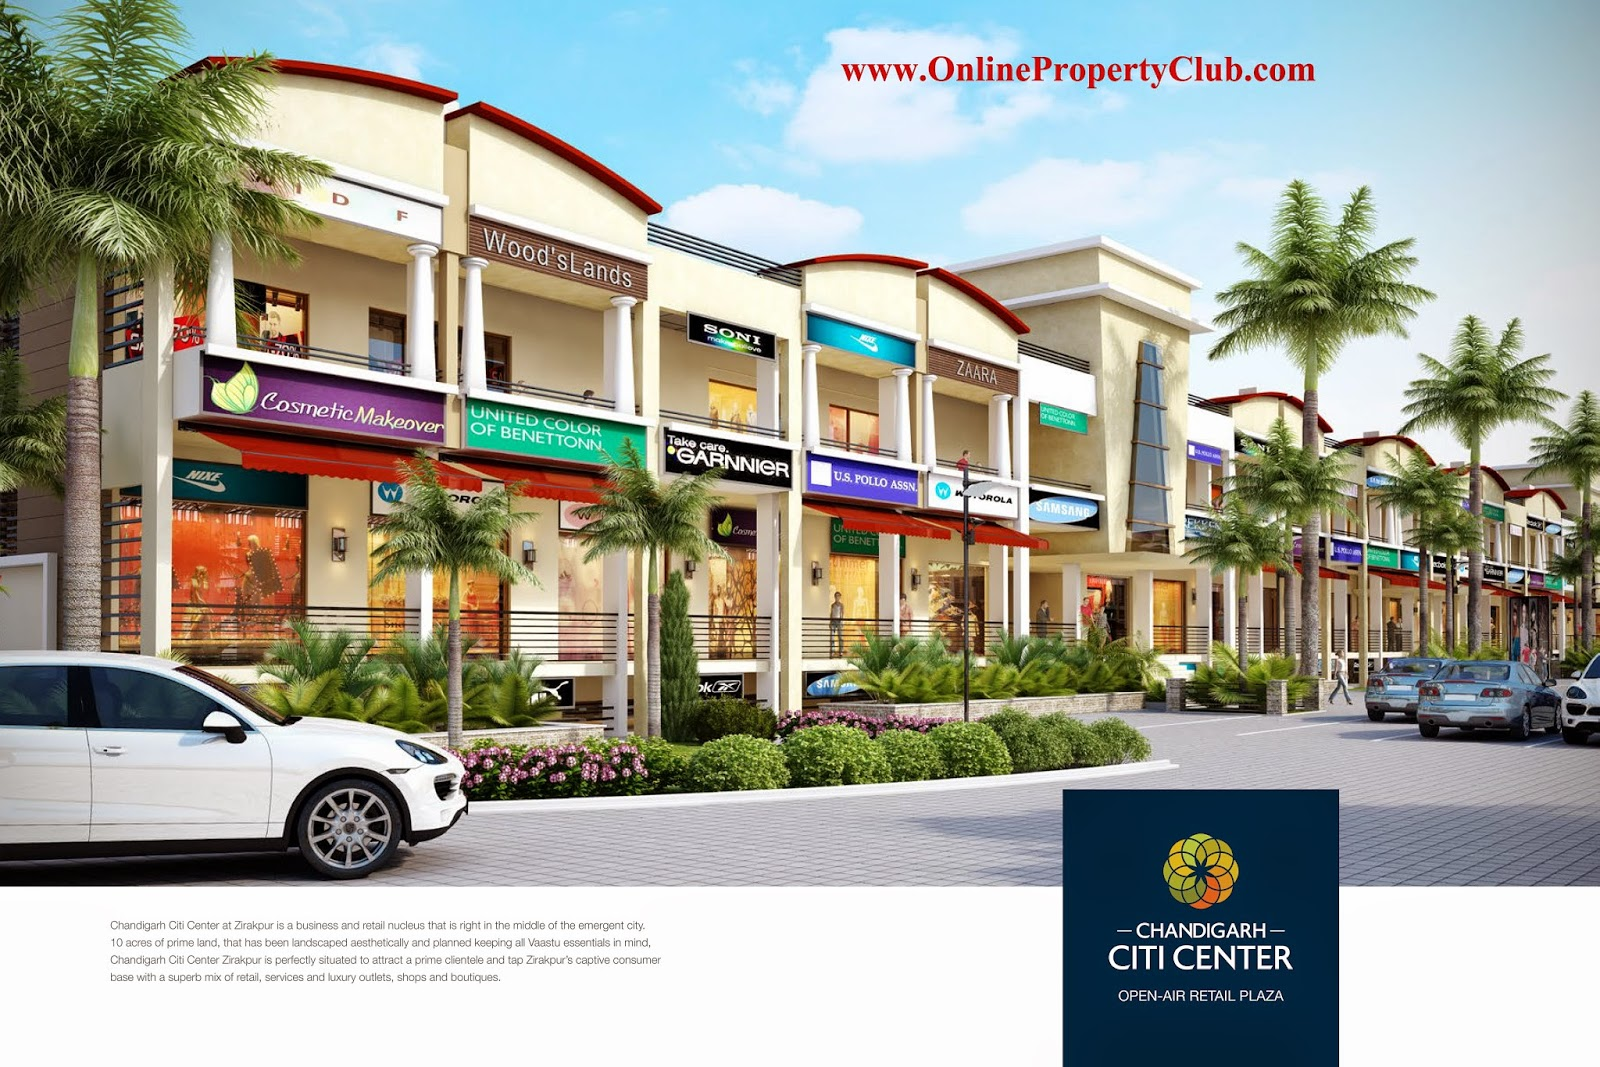 Chandigarh Citi Center, Commercial Hub on VIP Road, Zirakpur near Chandigarh